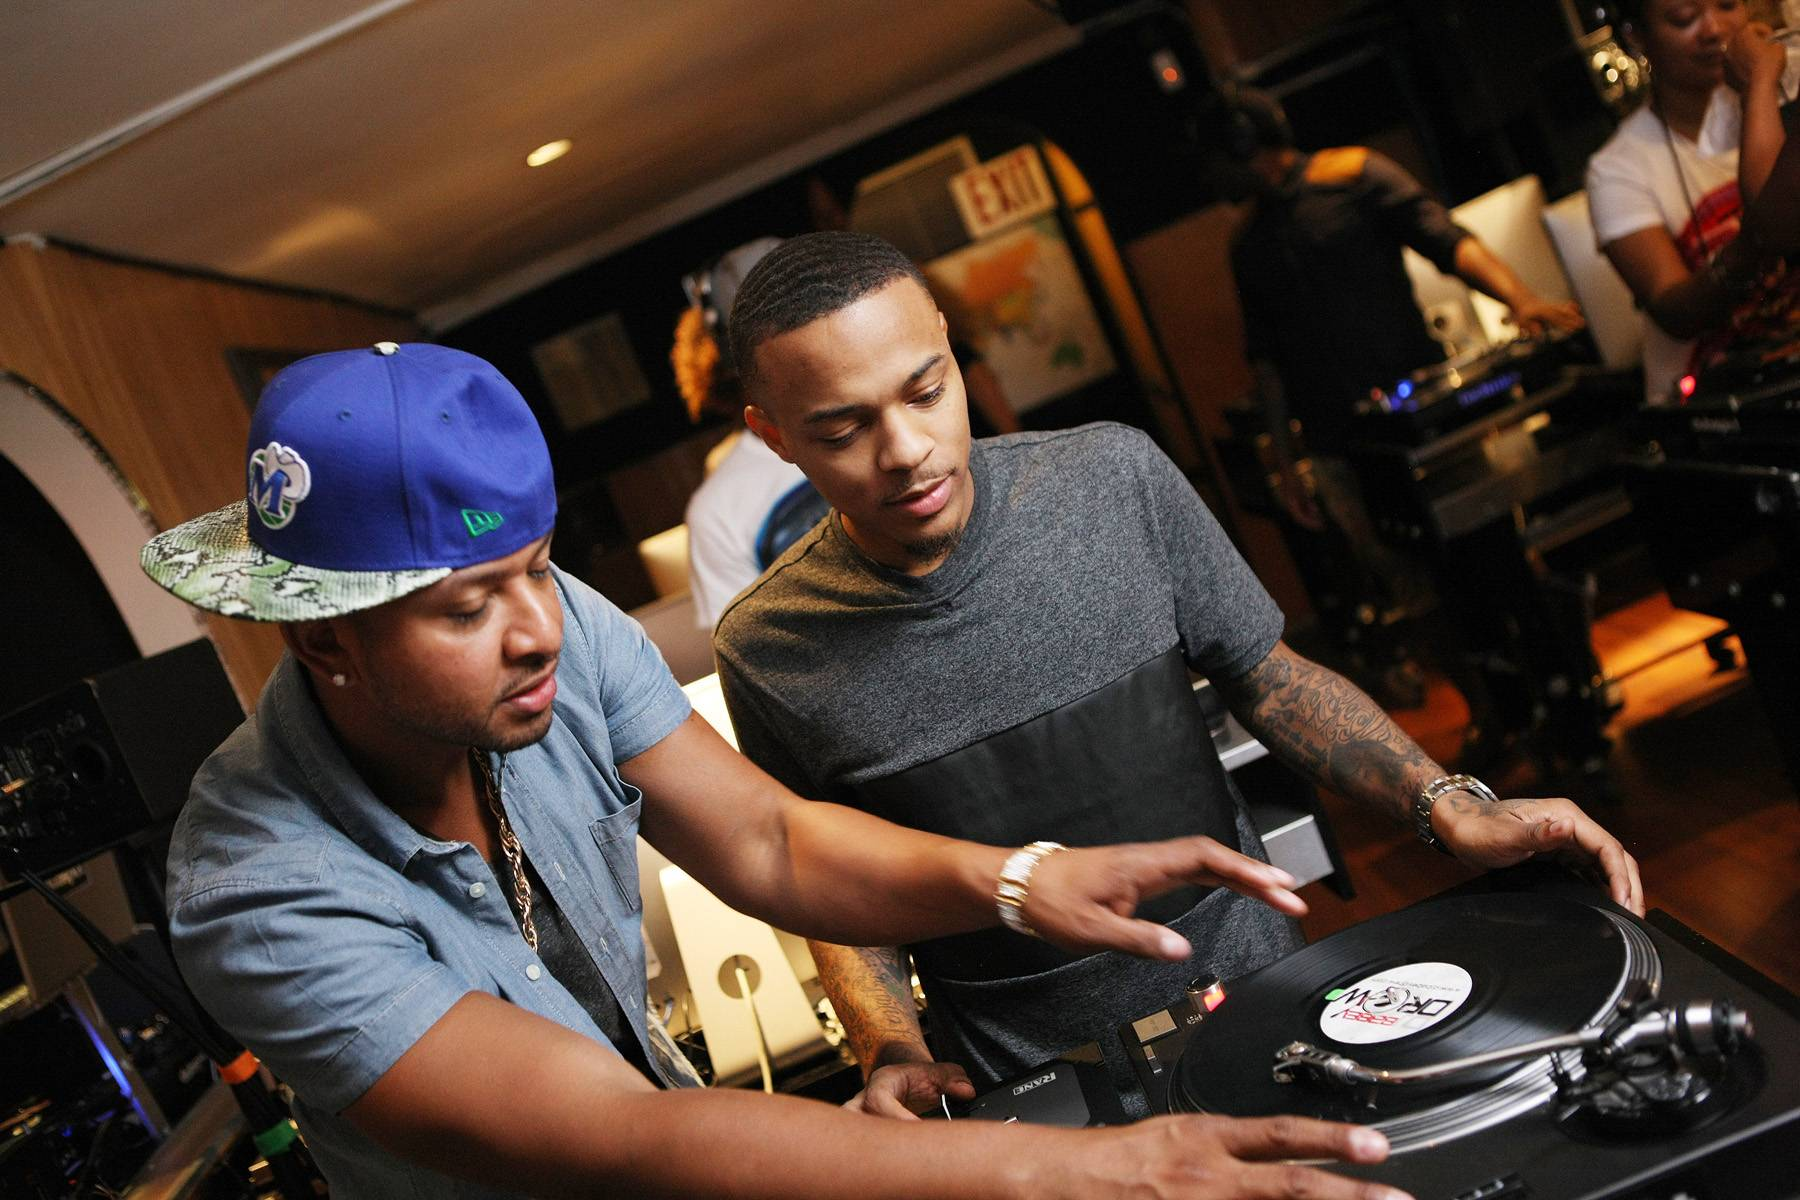 Show Us What You Got! - DJ Babey Drew sees if Bow Wow has what it takes to master the mix. (Photo: Bennett Raglin/BET/Getty Images for BET)